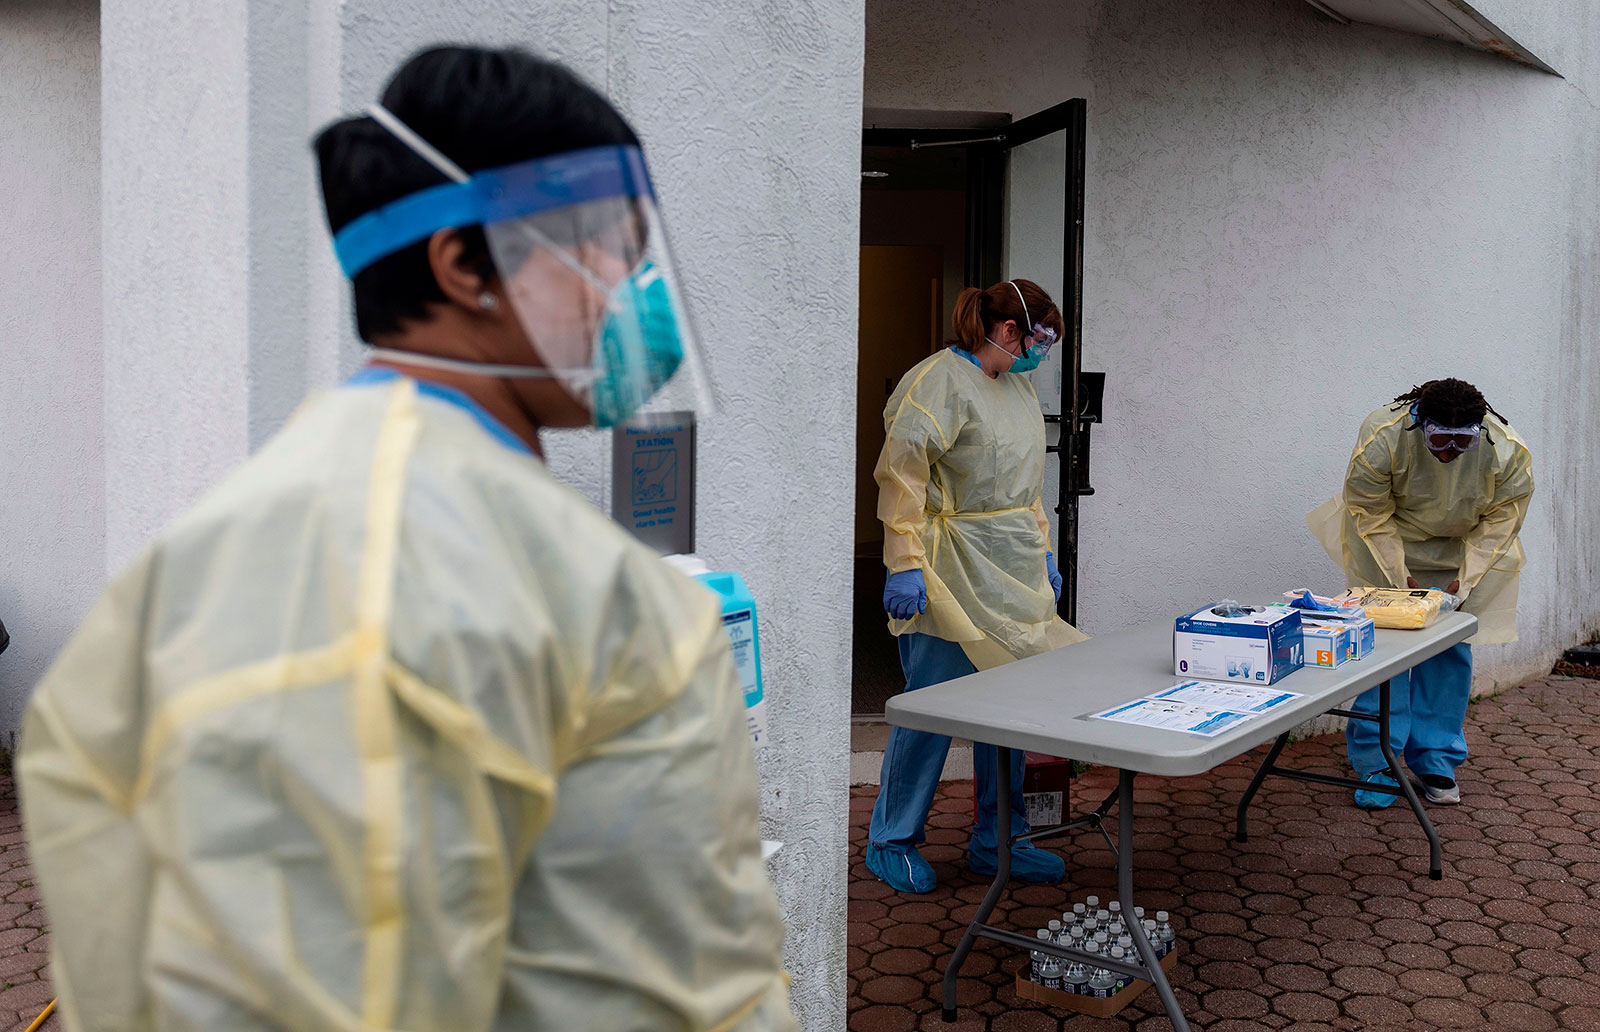 Health care workers put on personal protective equipment at a drive-through testing site in Arlington, Virginia, on March 20, 2020.